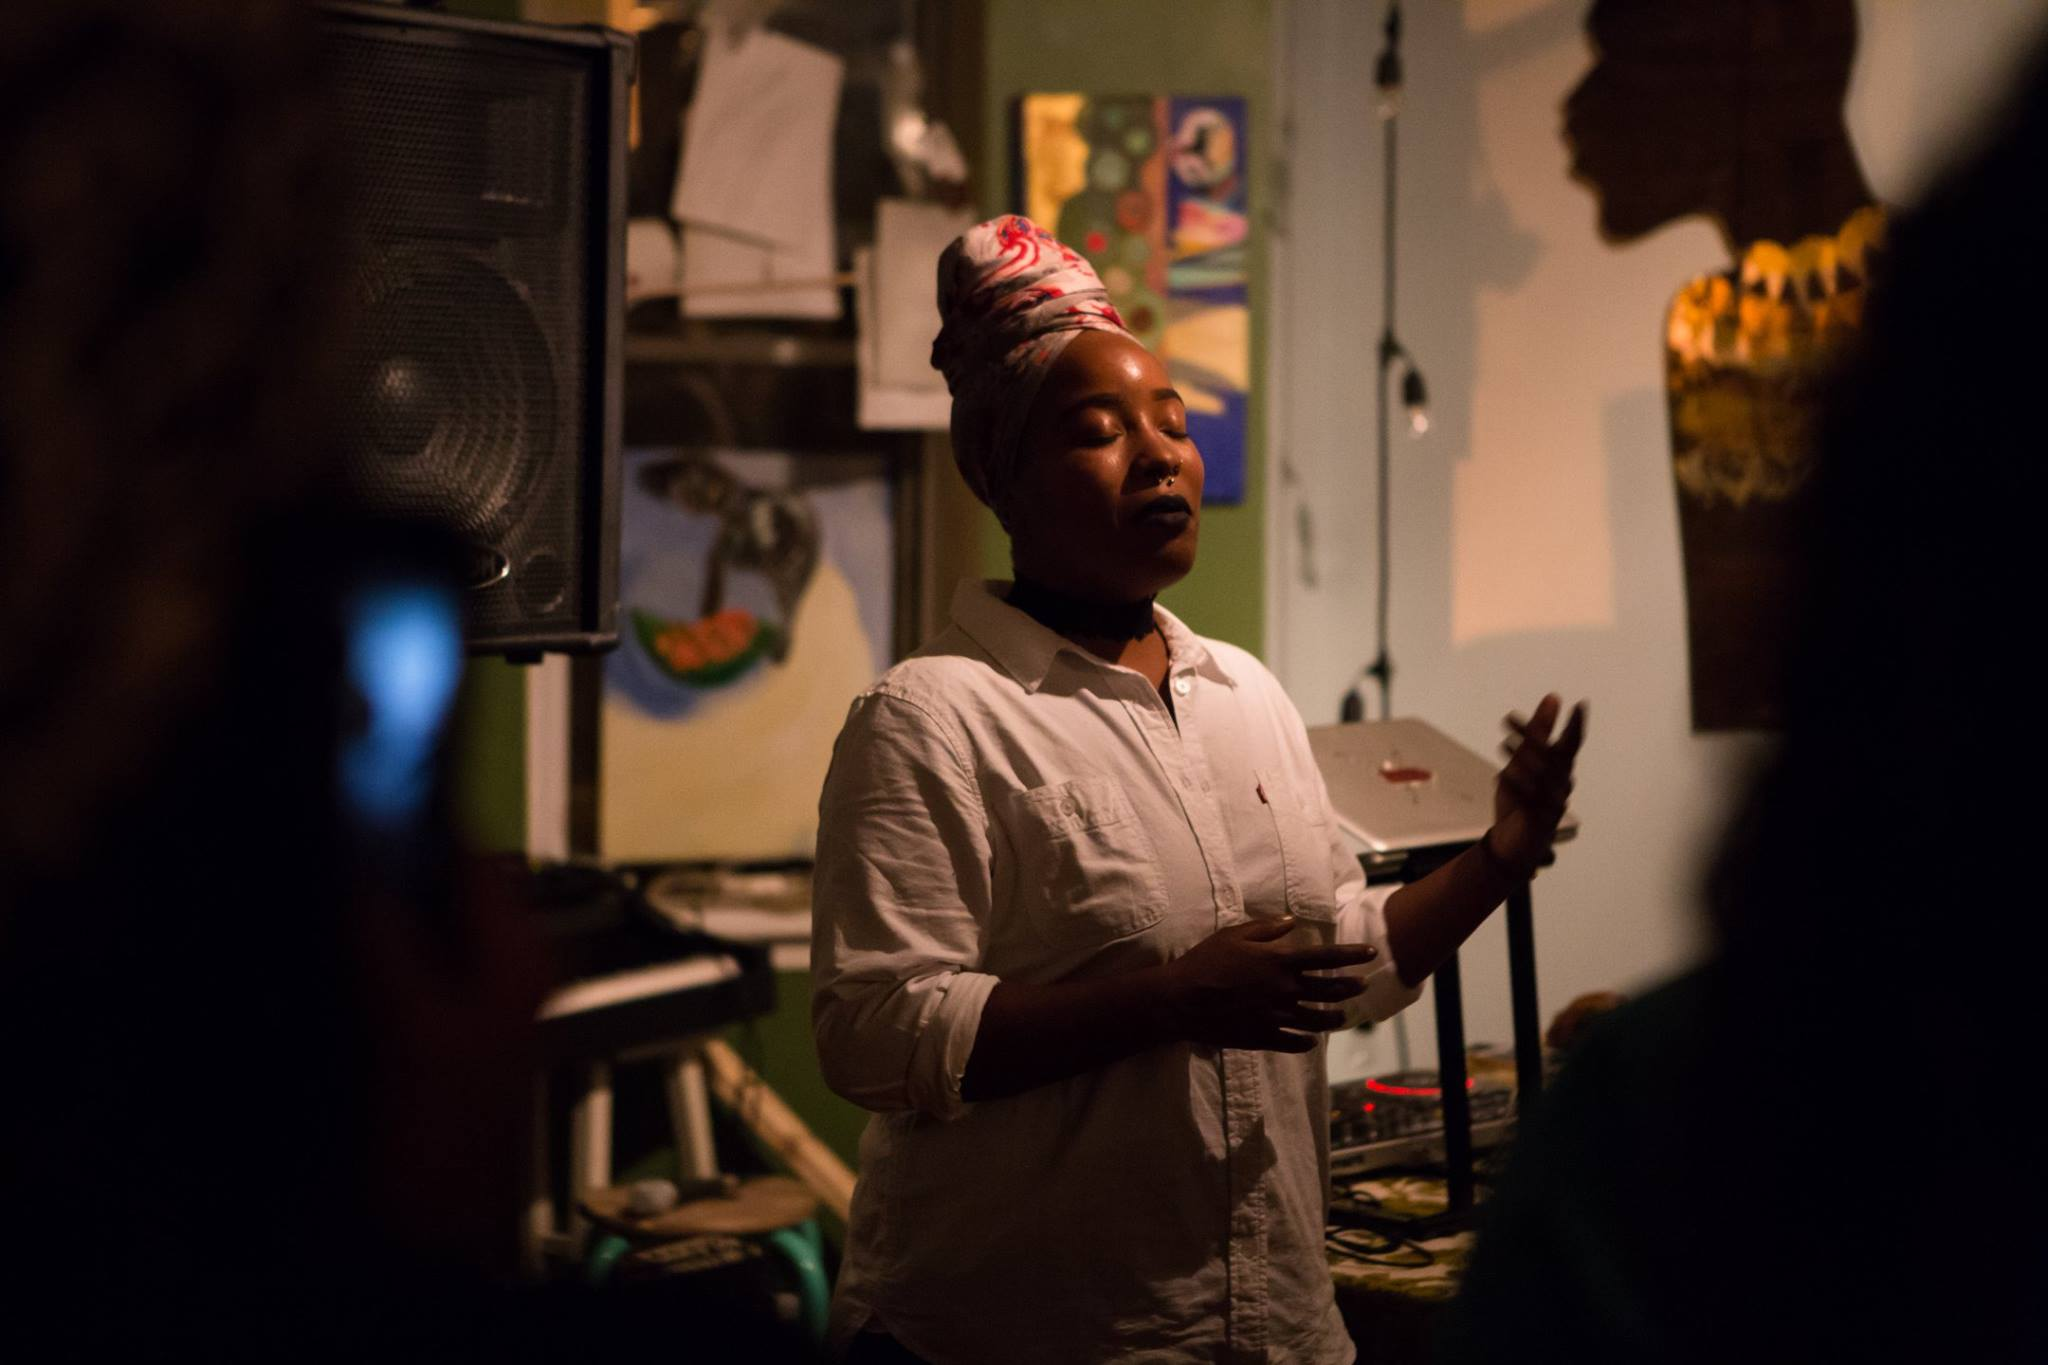 @__sunflowermo, photo by @tonyhitchcock